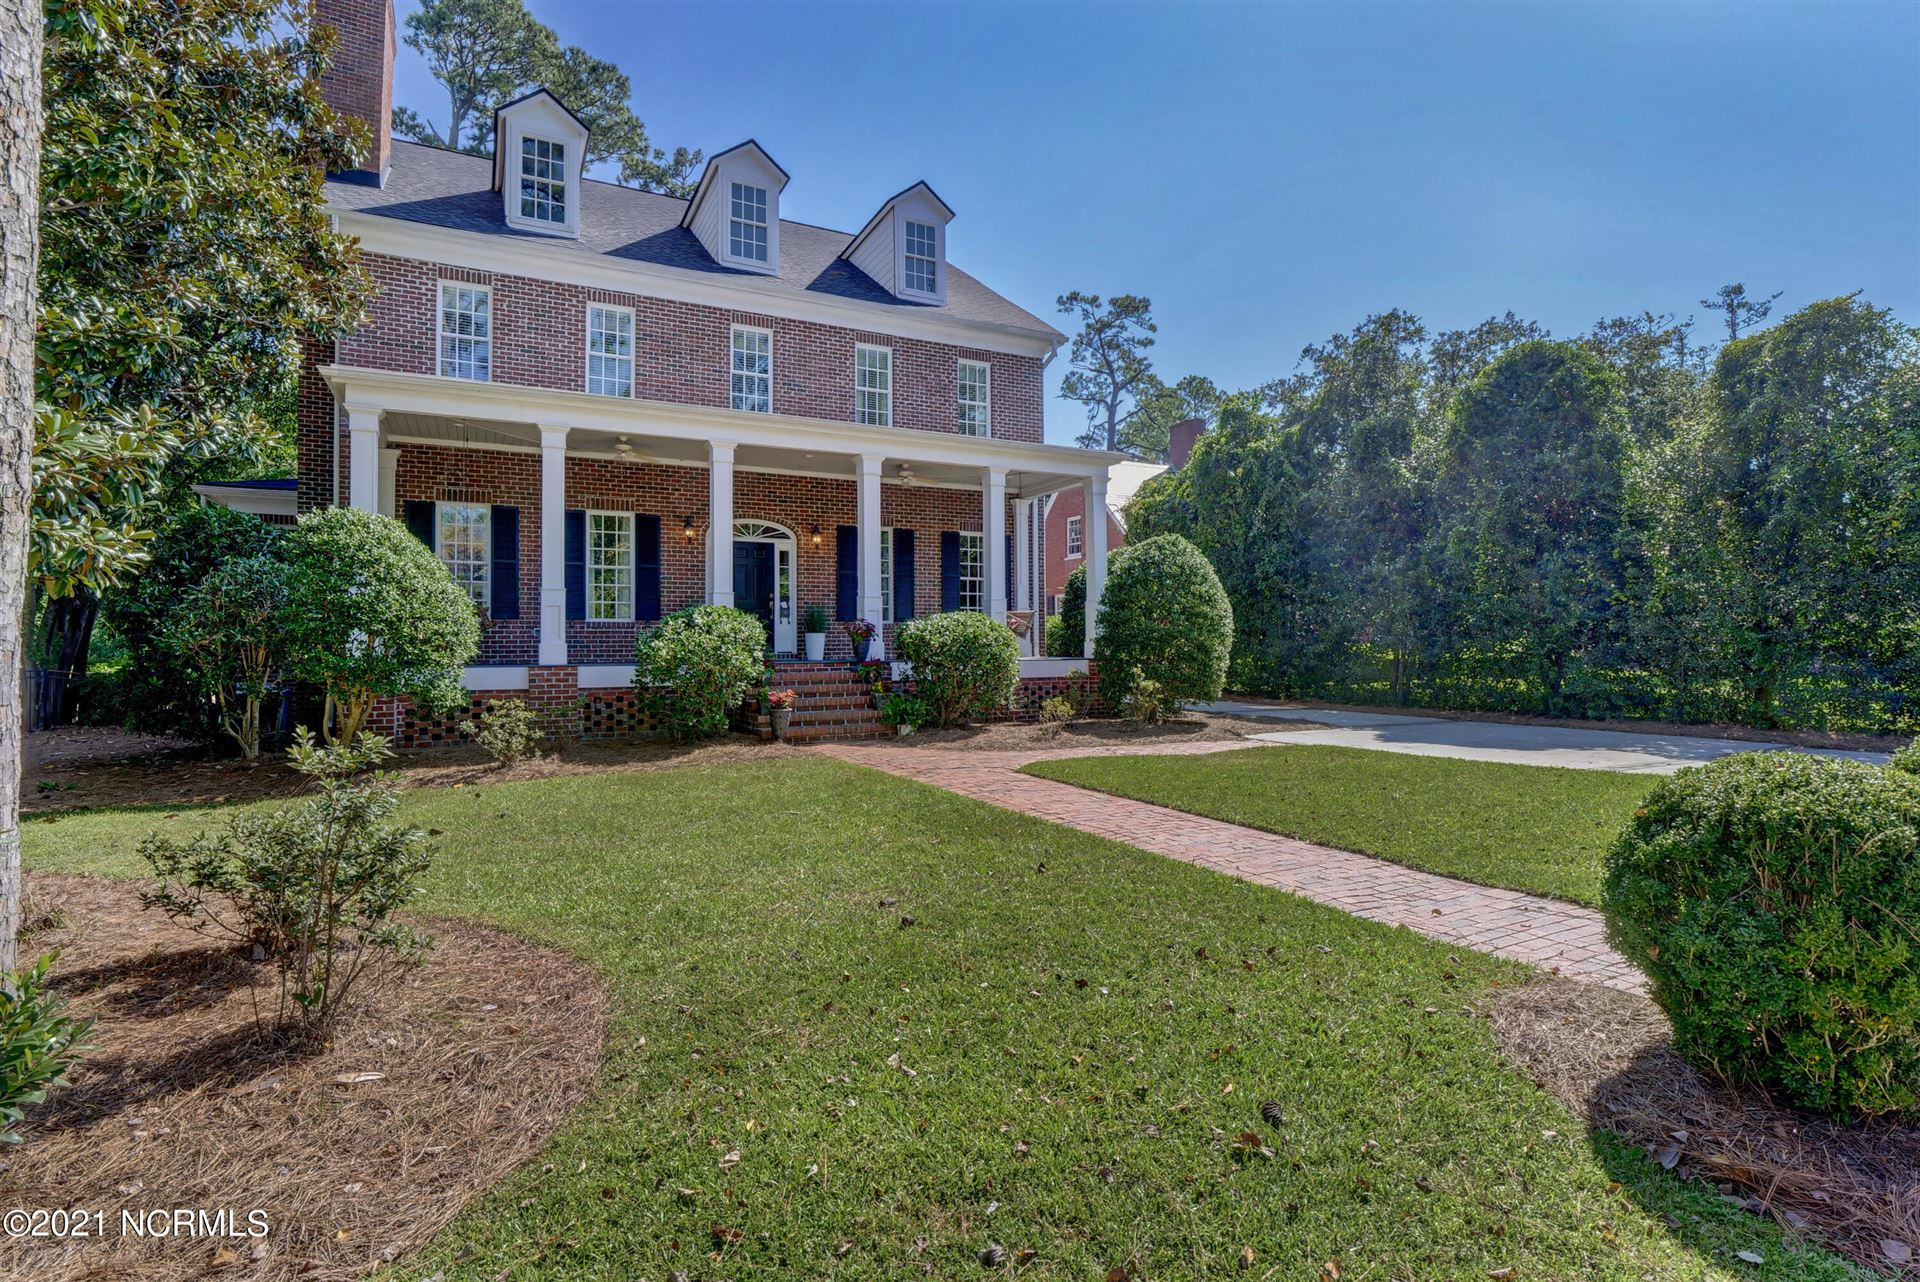 Photo of 19 Forest Hills Drive, Wilmington, NC 28403 (MLS # 100288095)